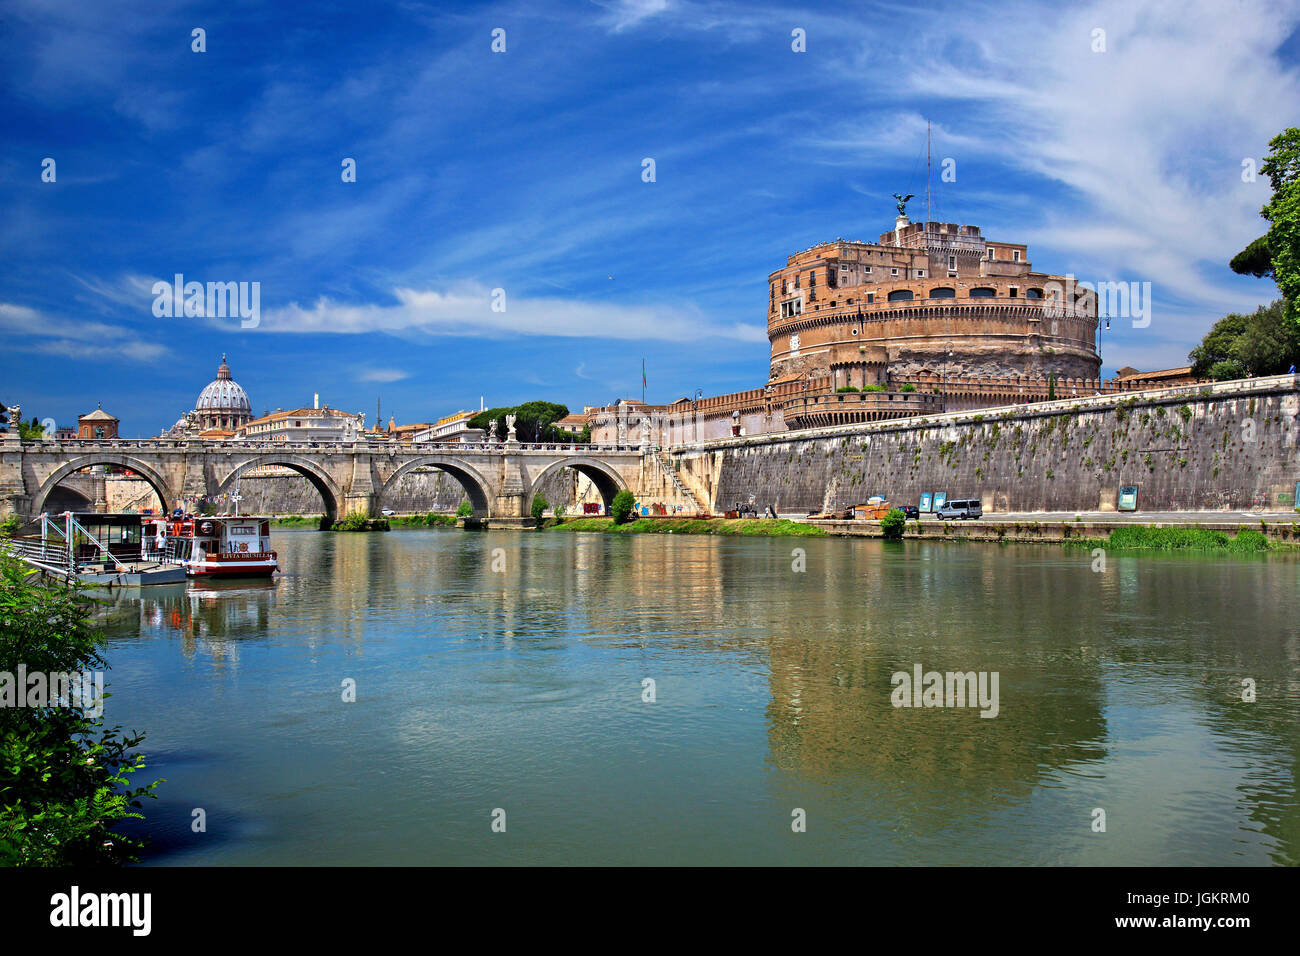 Tiber river, Ponte Sant'Angelo and Castel Sant'Angelo, Rome, Italy - Stock Image